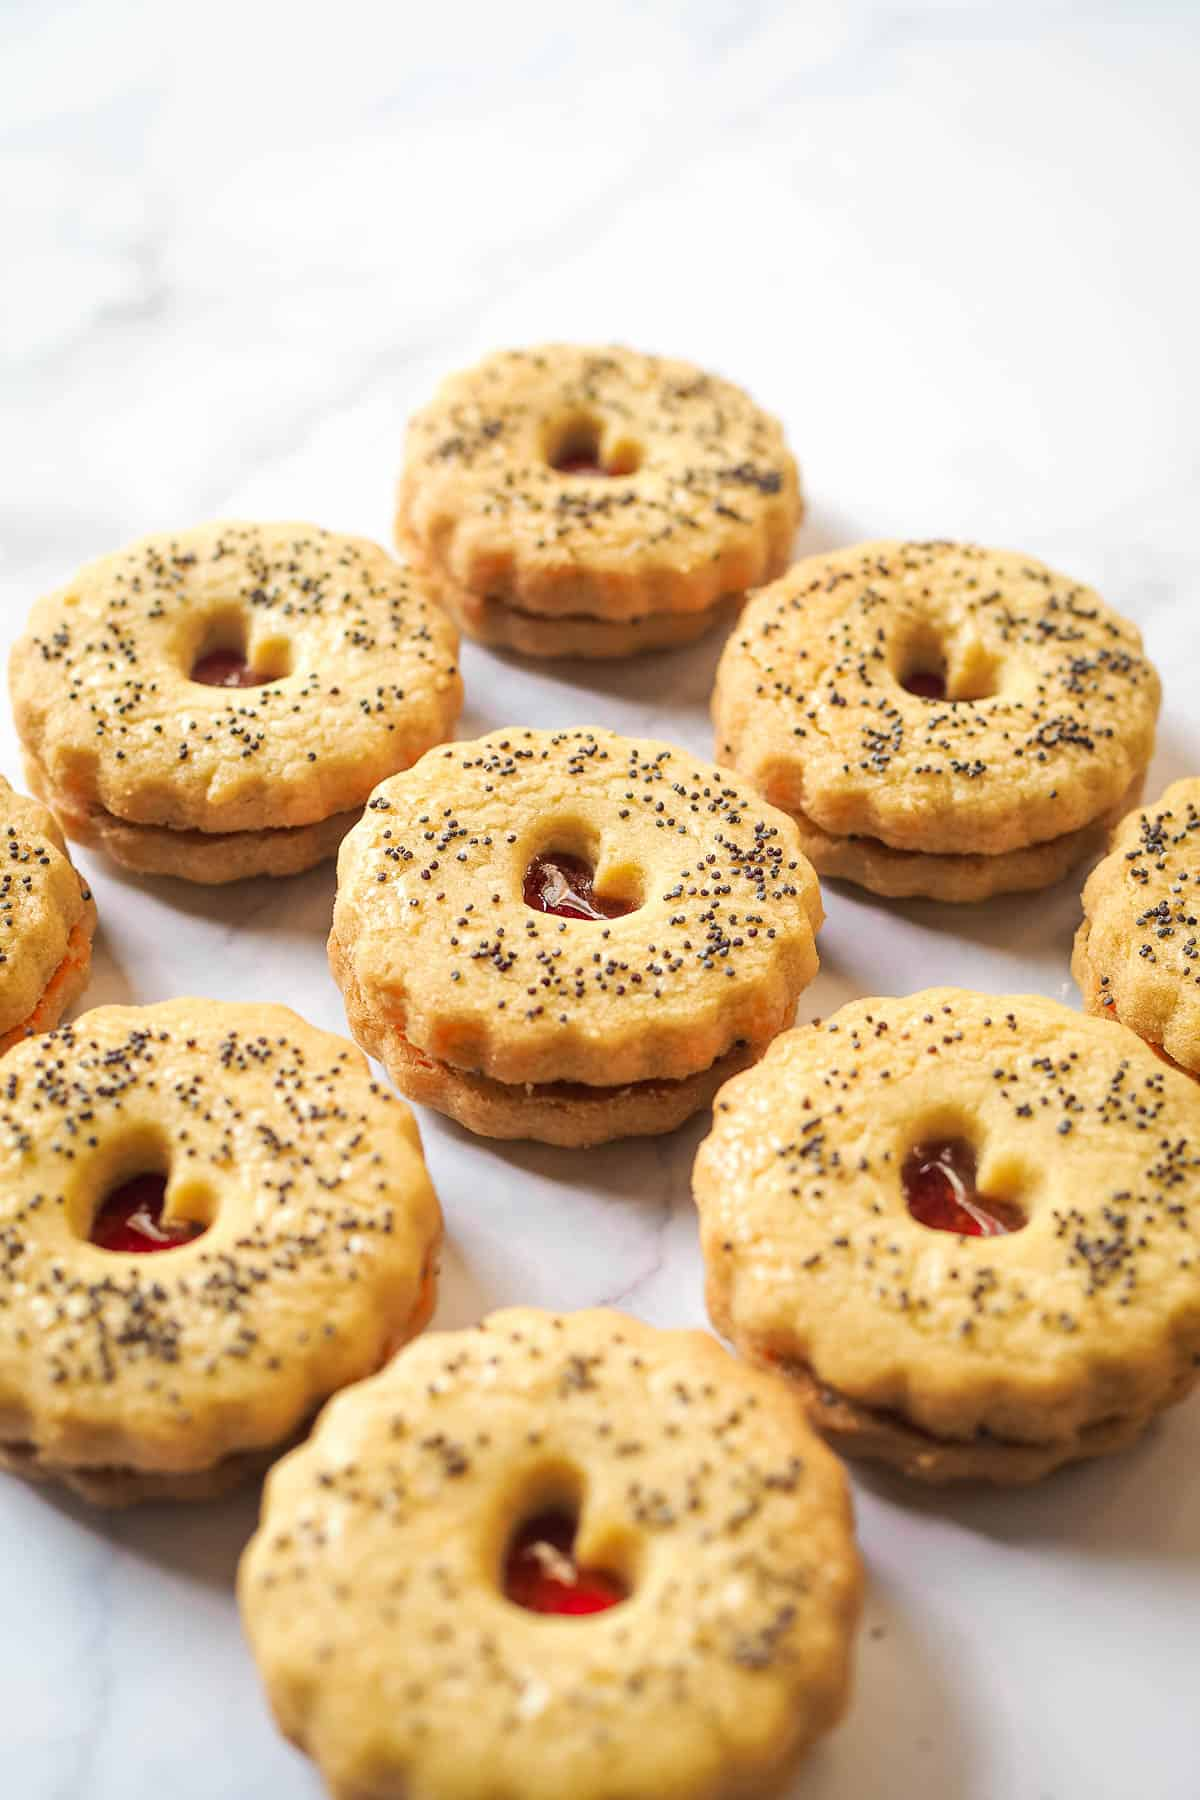 Round scalloped cookies sandwiched with strawberry jam. Cookies are with a small heart shaped hole on top